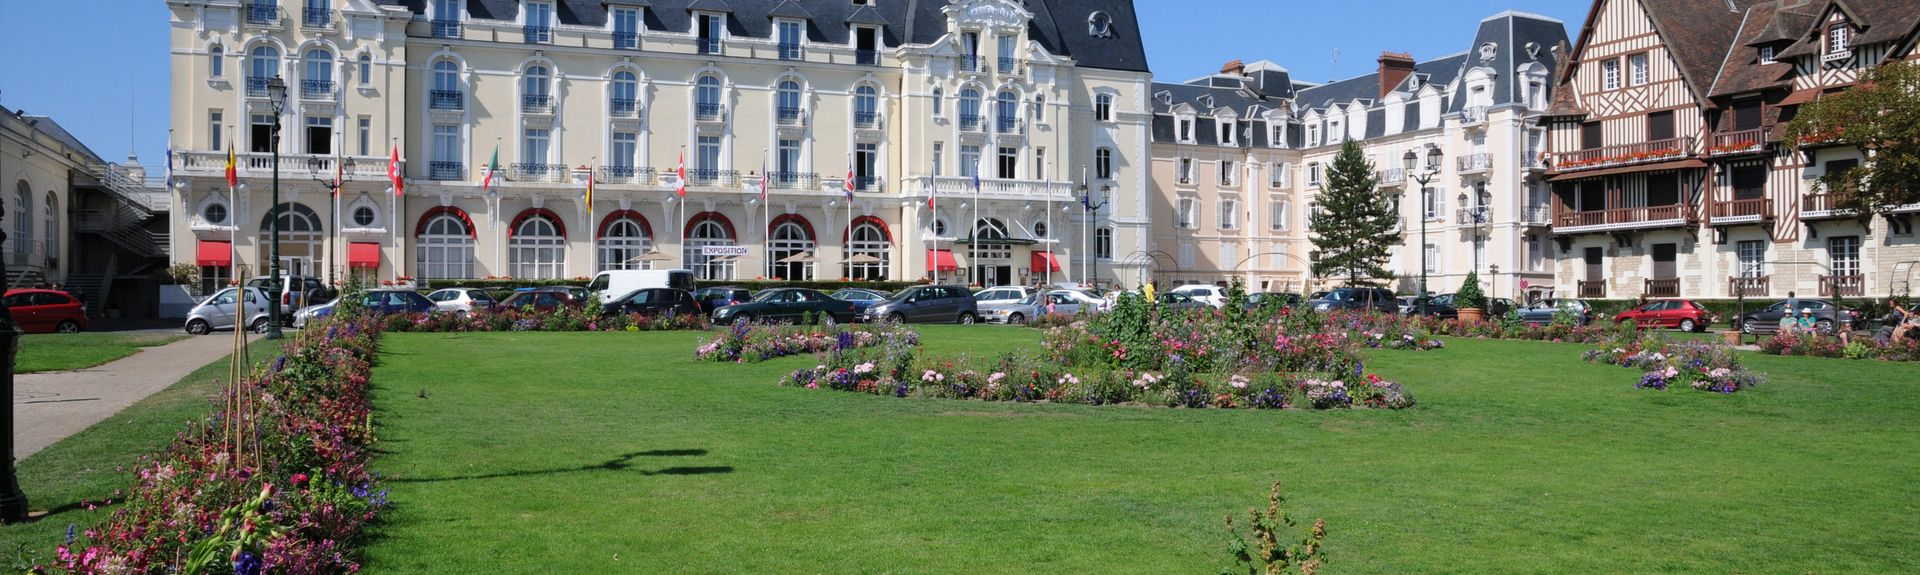 Cabourg, Calvados (department), France